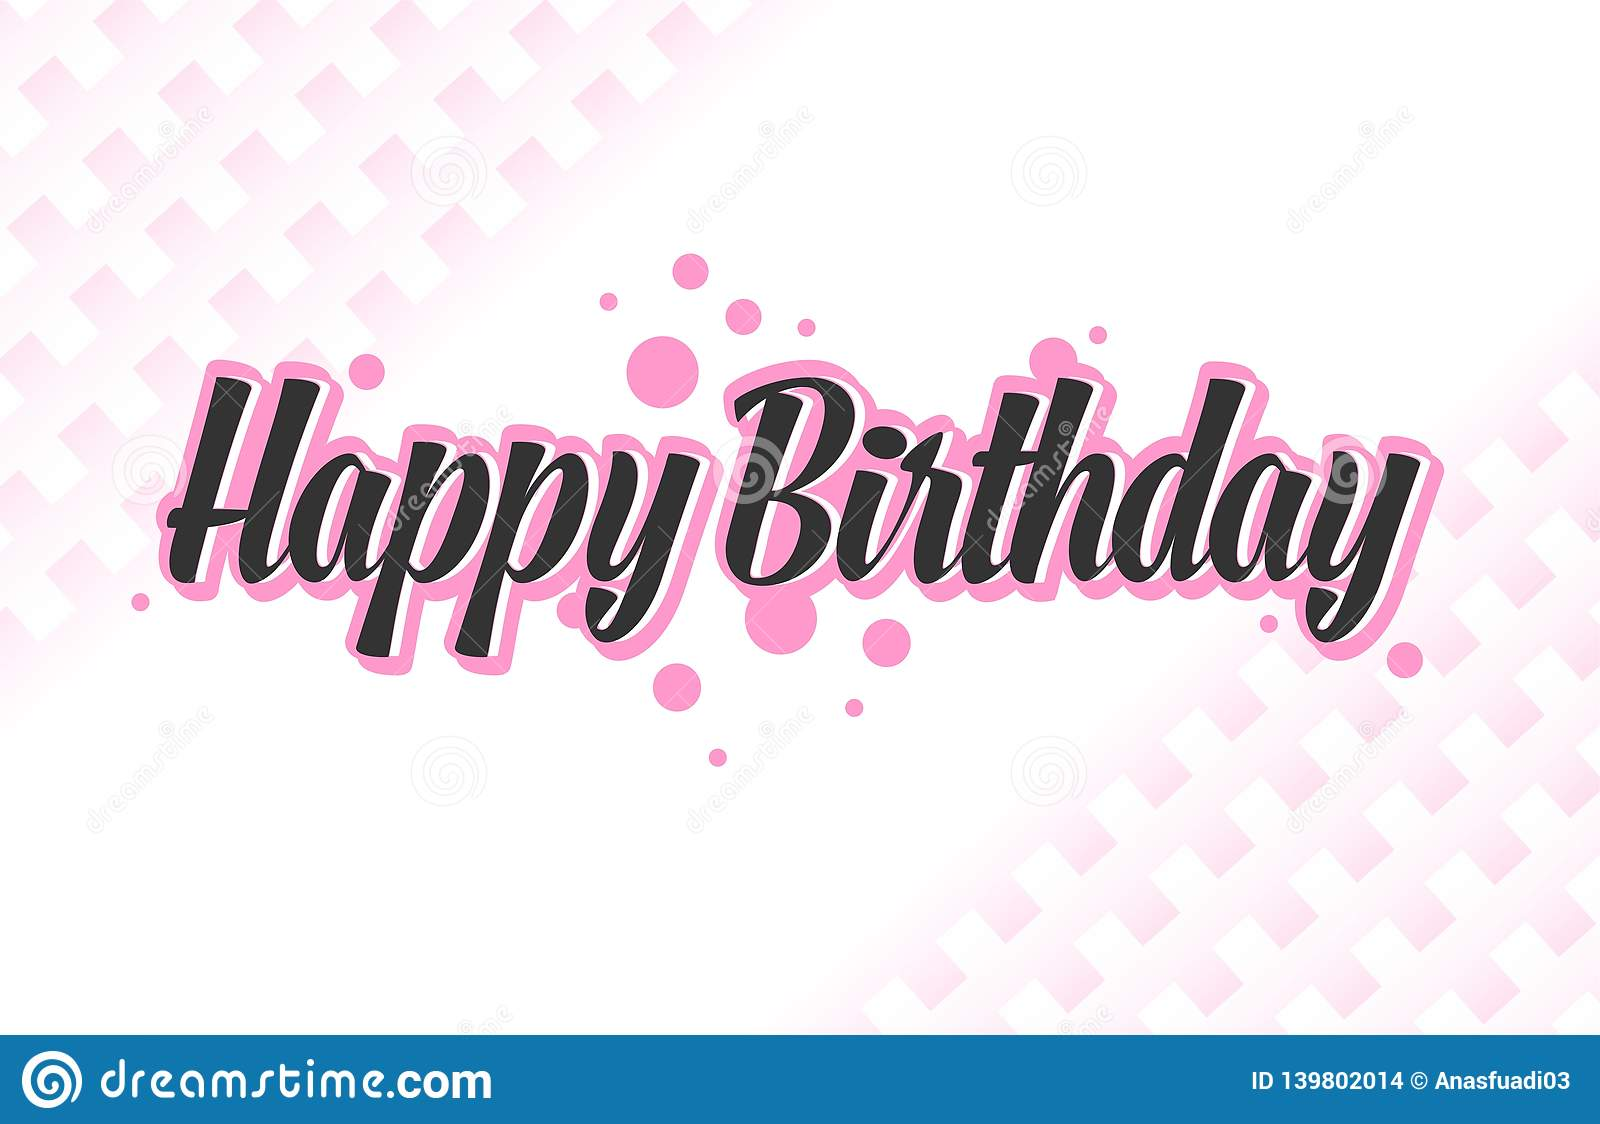 Typography Design For Print Greetings Card Shirt Banner Poster Black And Pink Text Isolated On White Background Happy Birthday